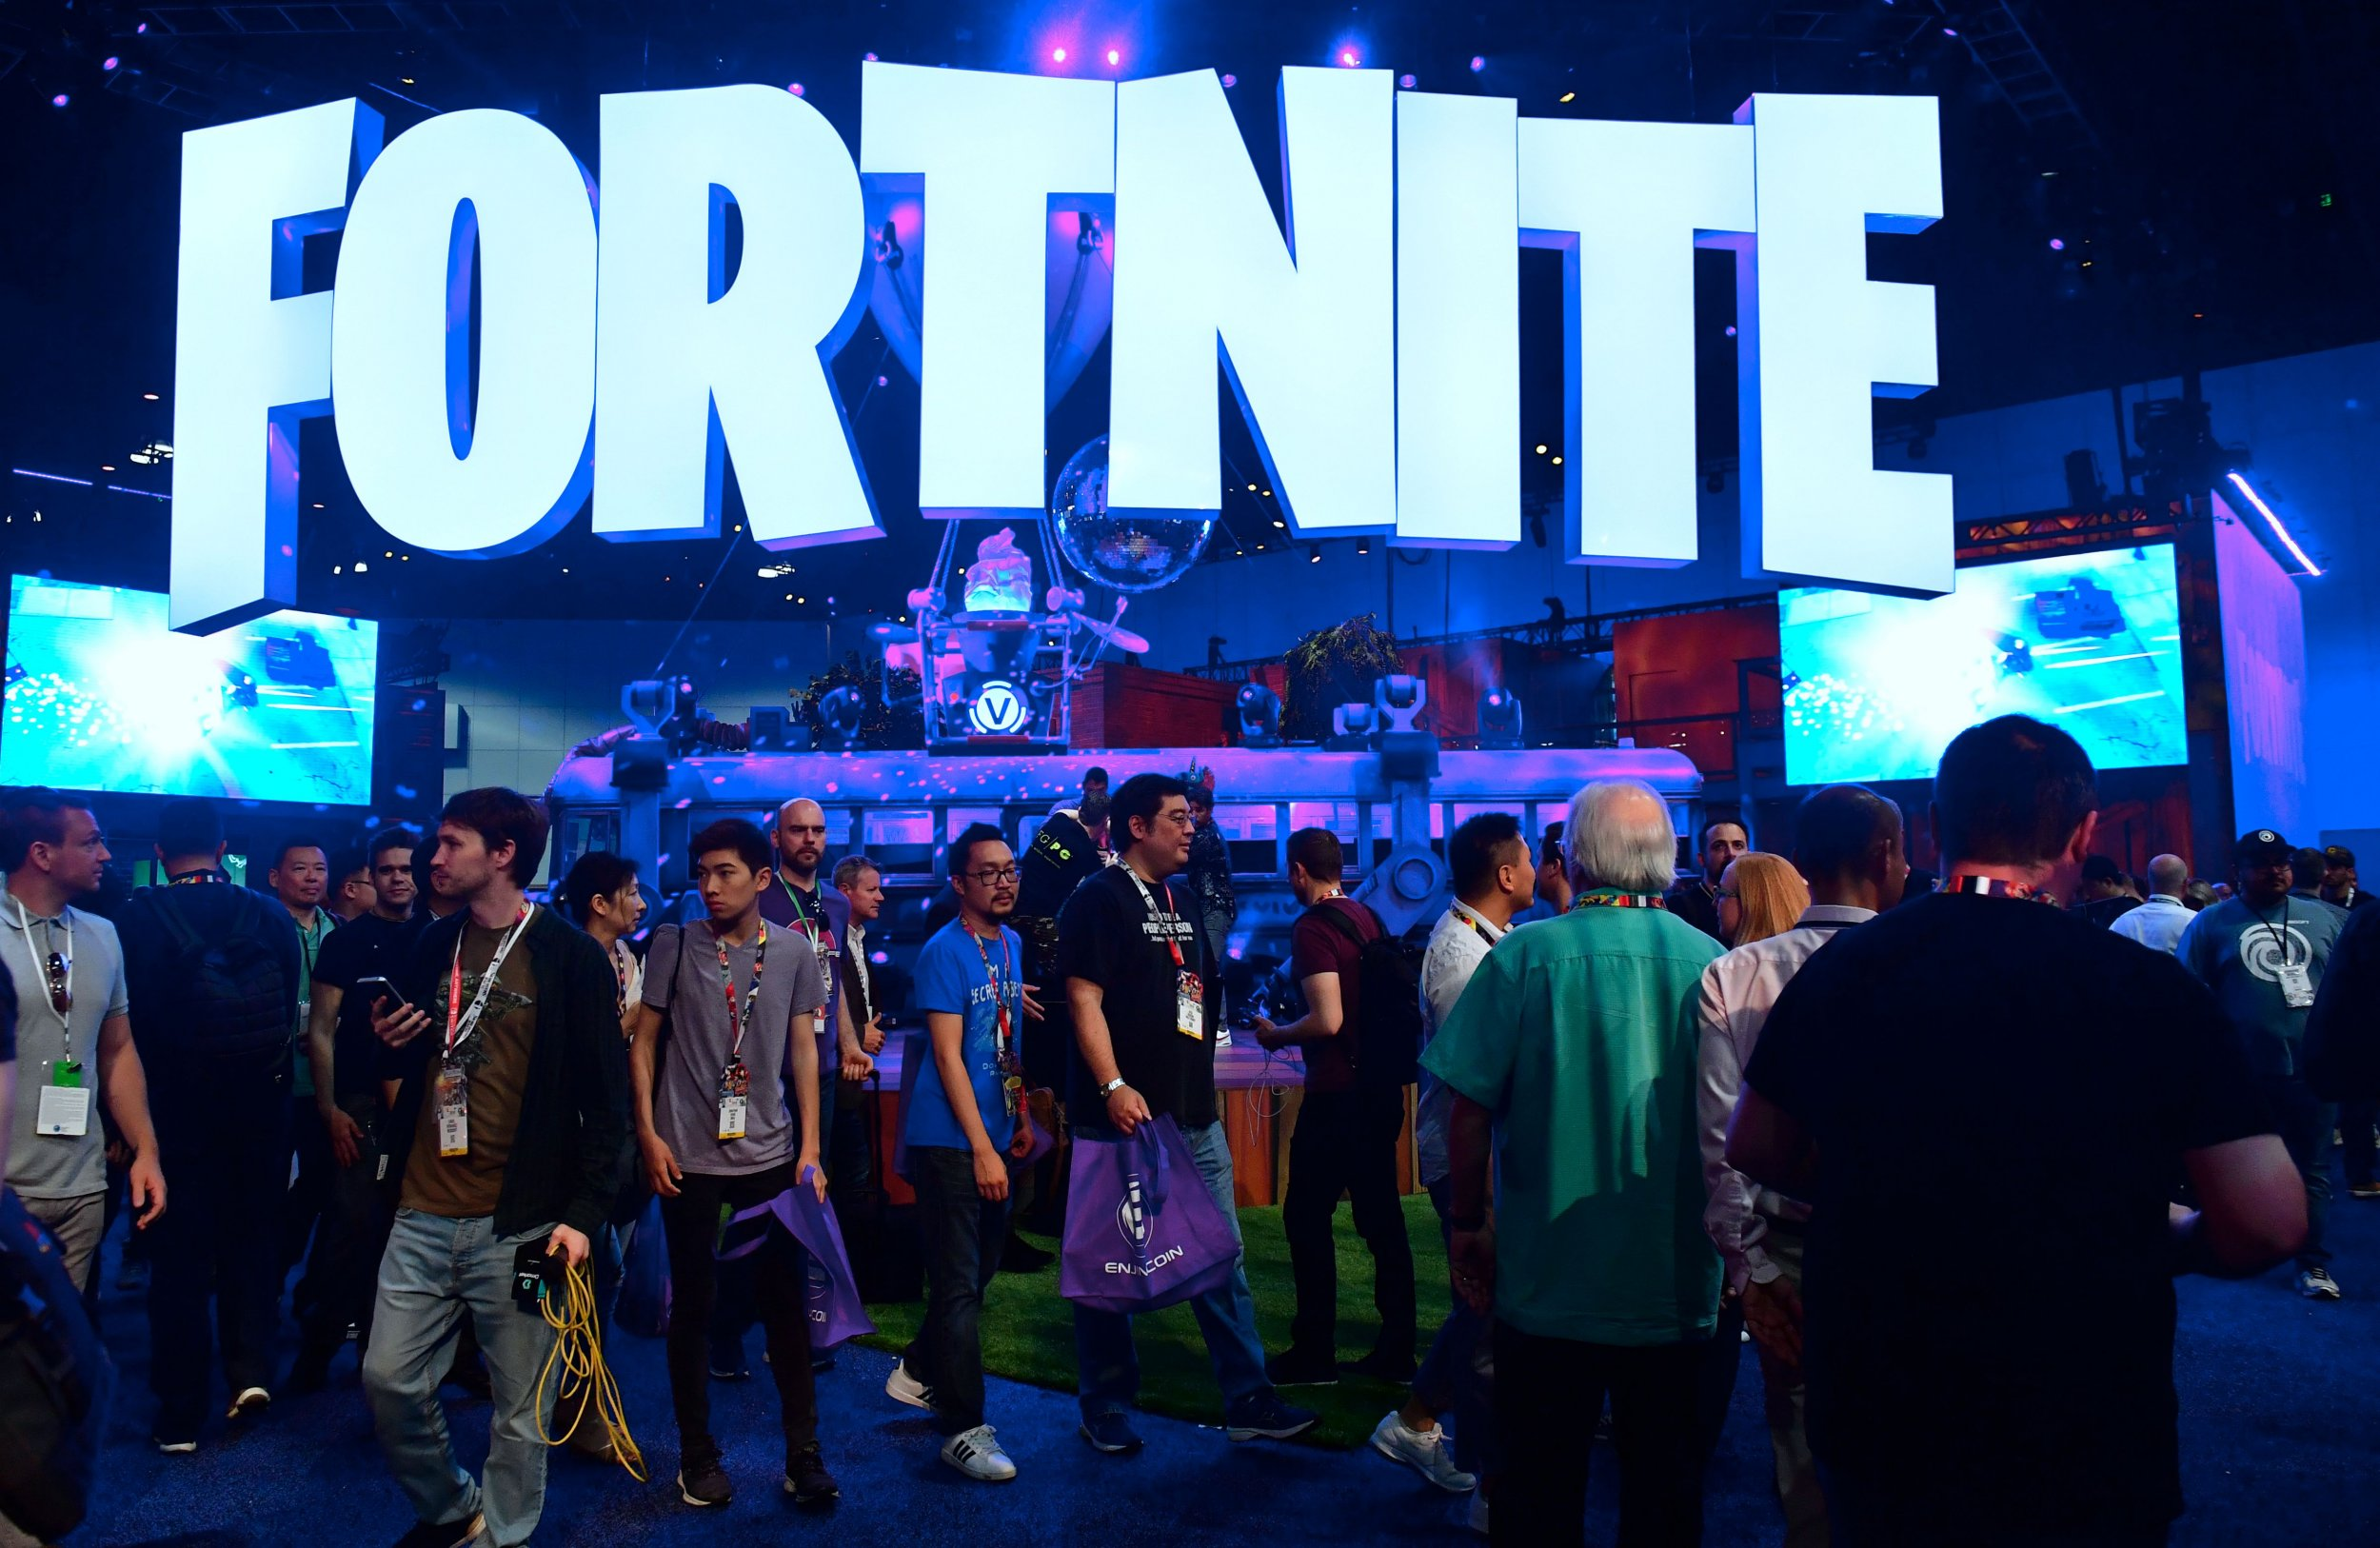 Fortnite' Not Most Tweeted About Video Game of 2018